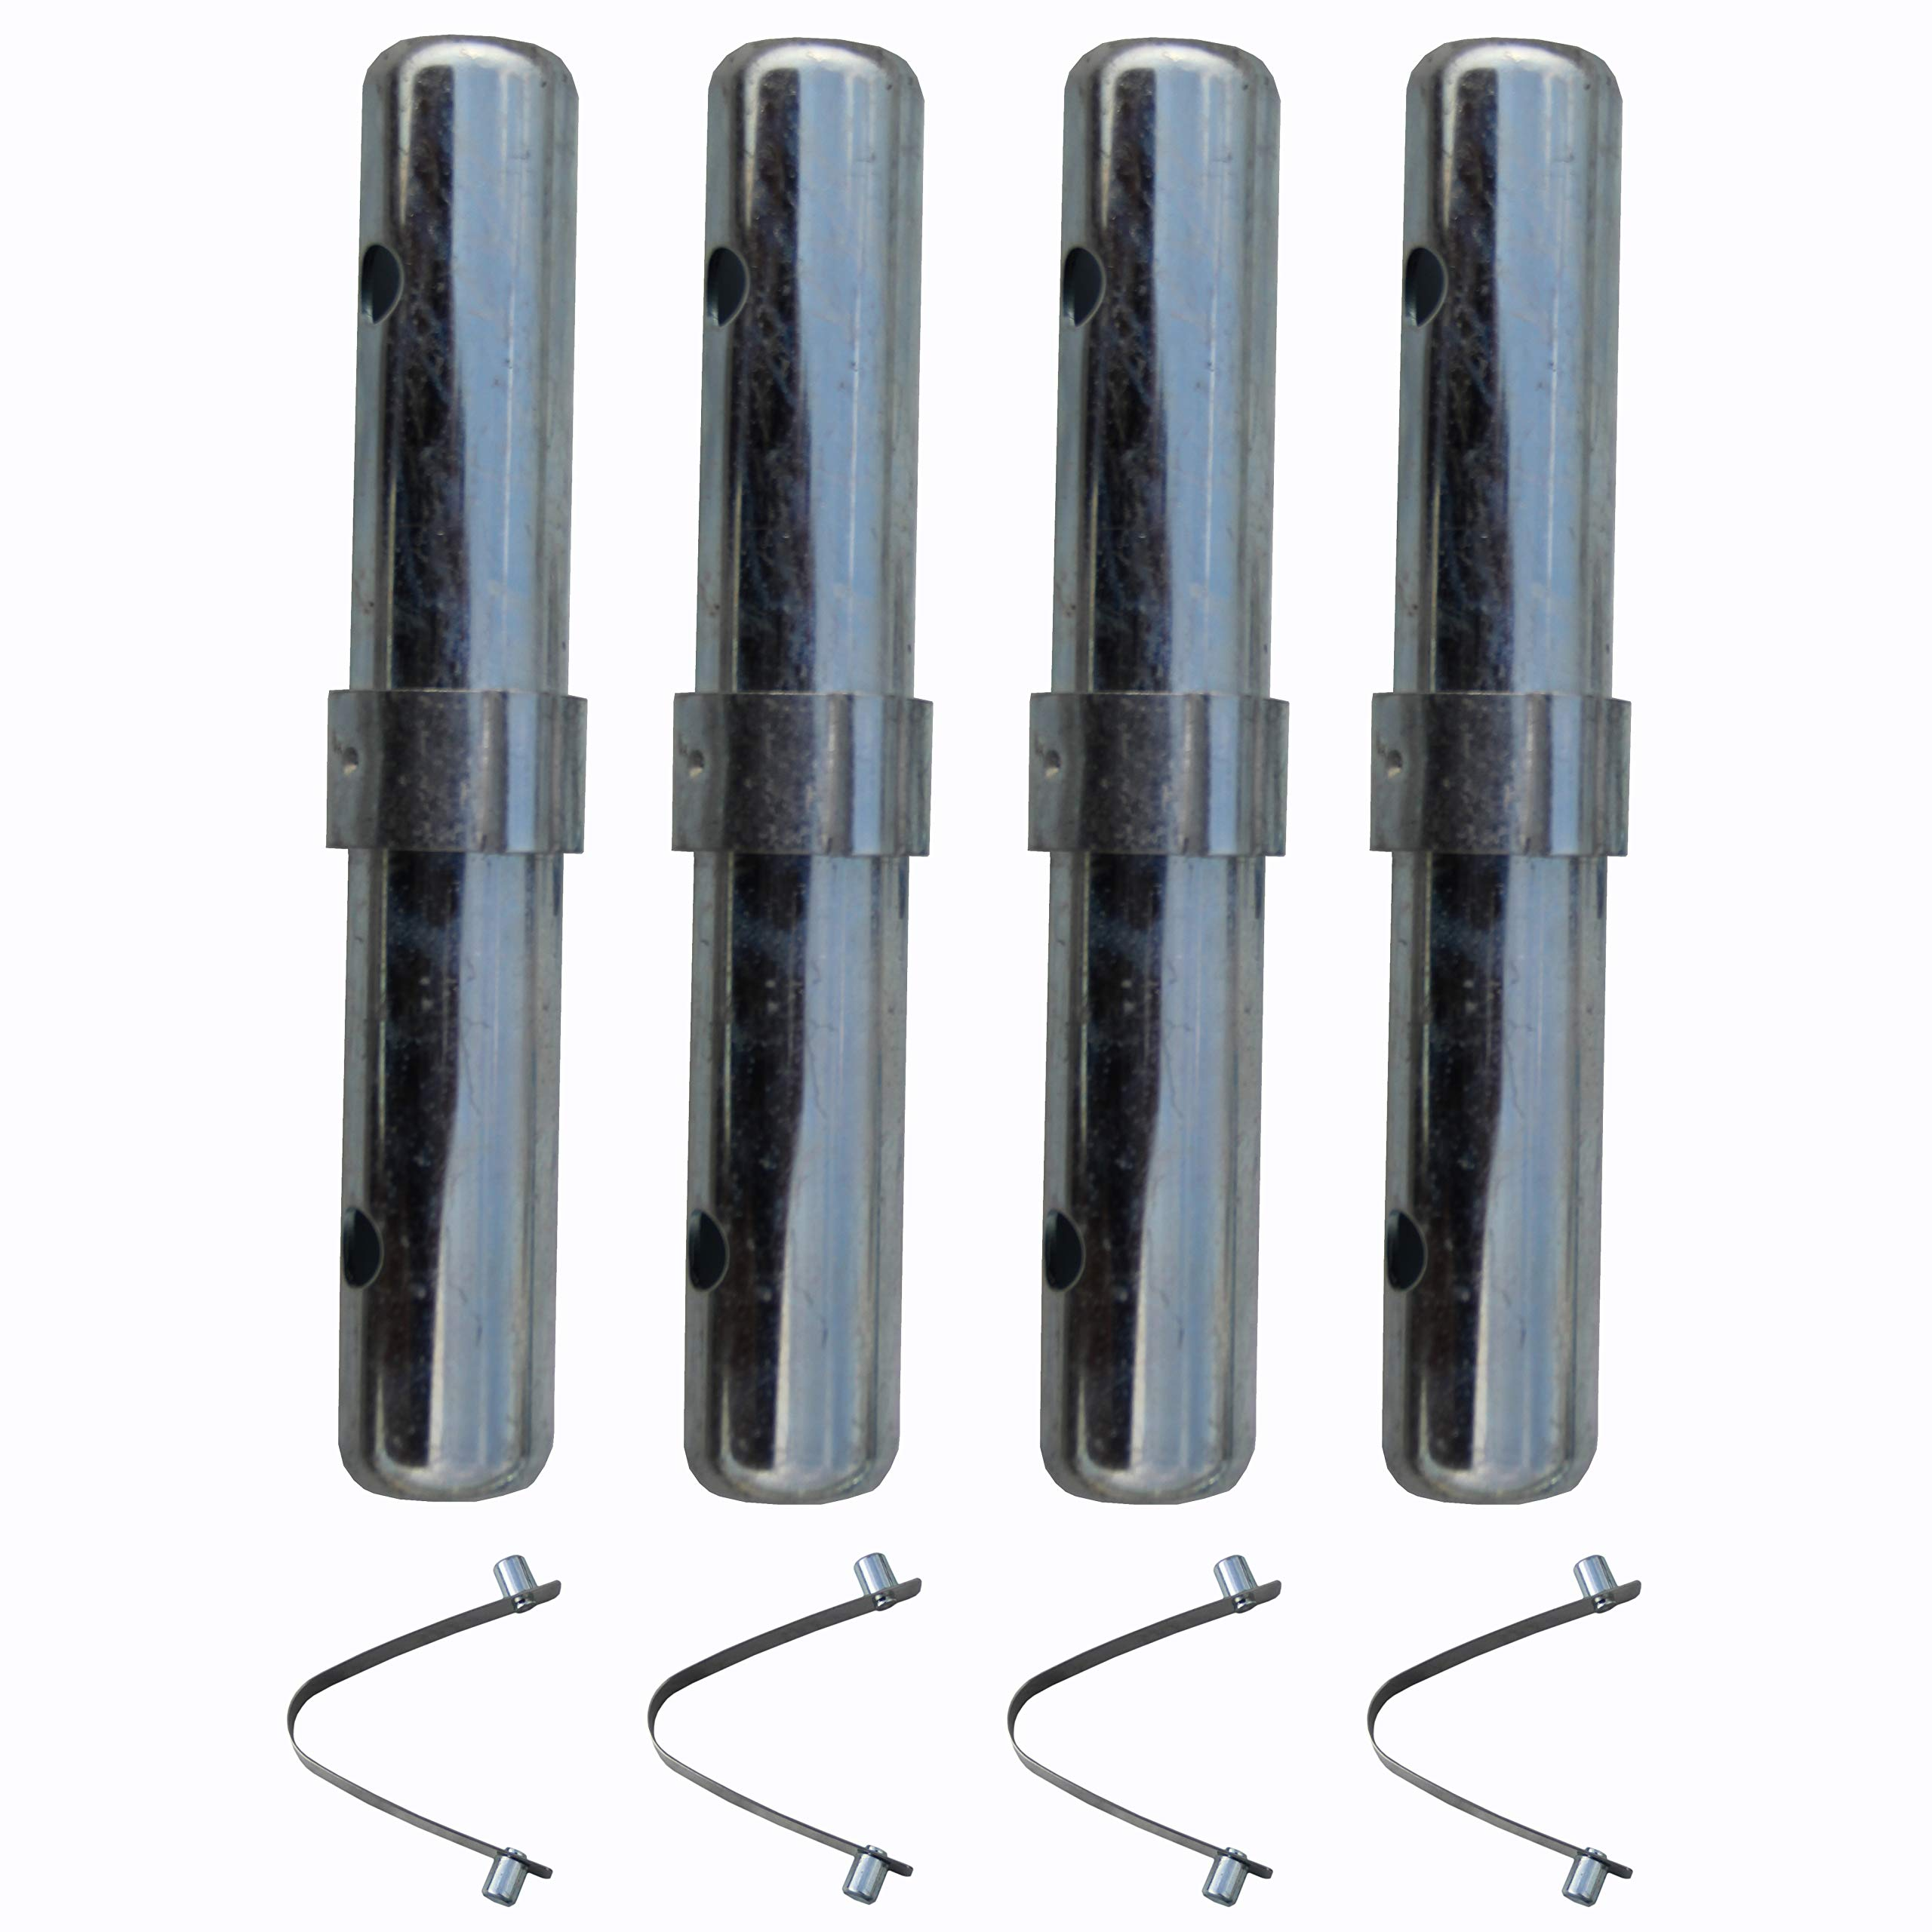 Scaffolding Coupling Pin with 1'' Collar with Spring Pin 4 Sets